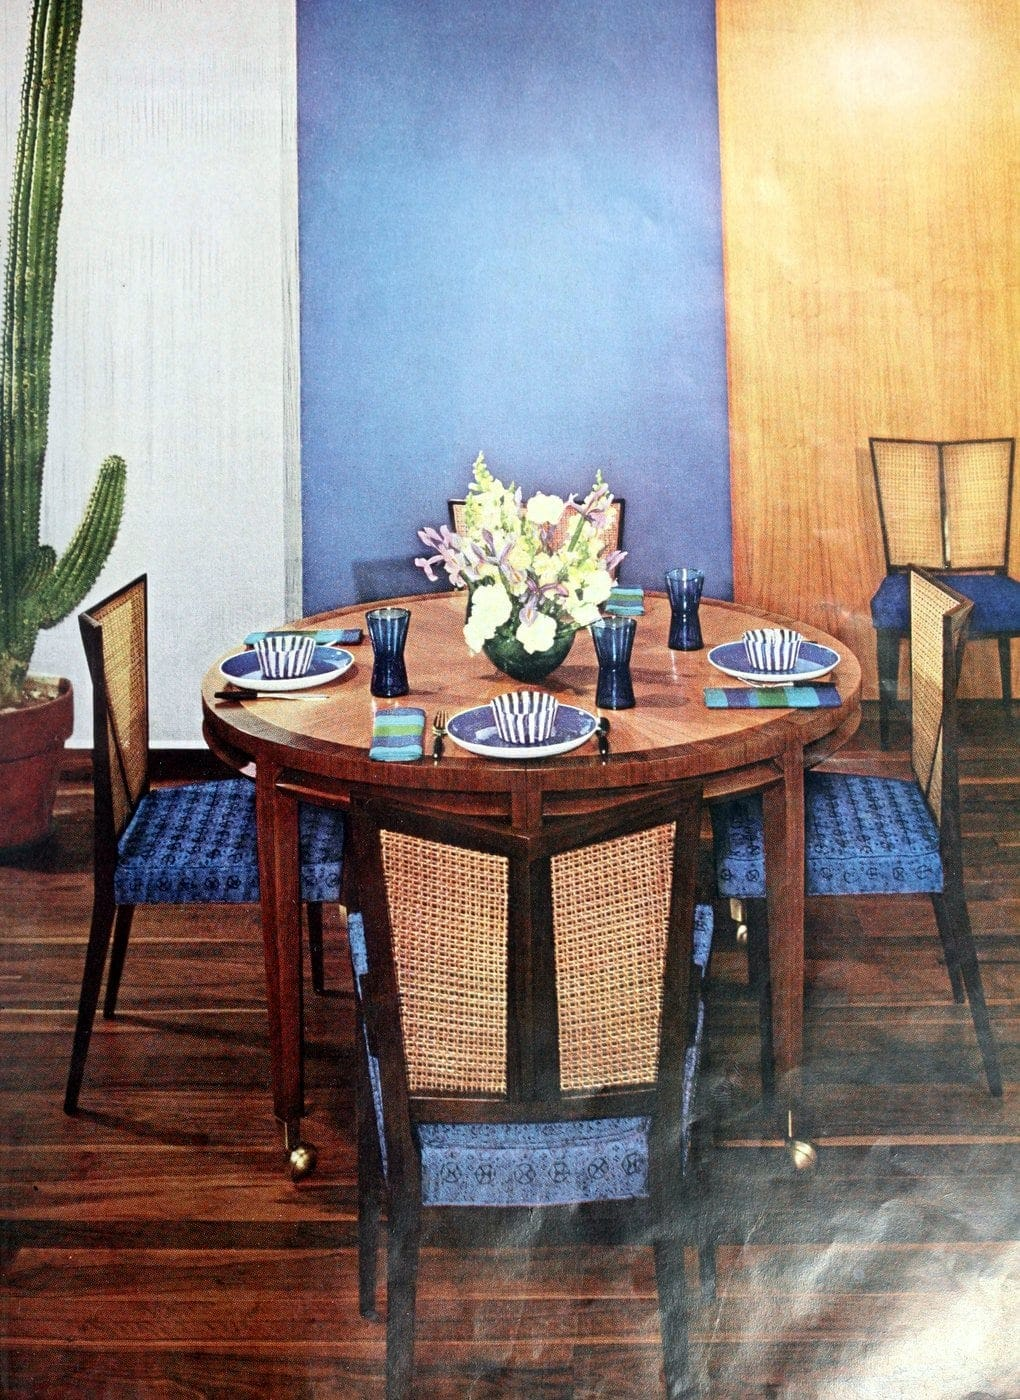 Vintage 50s table setting ideas from 1959 (8)